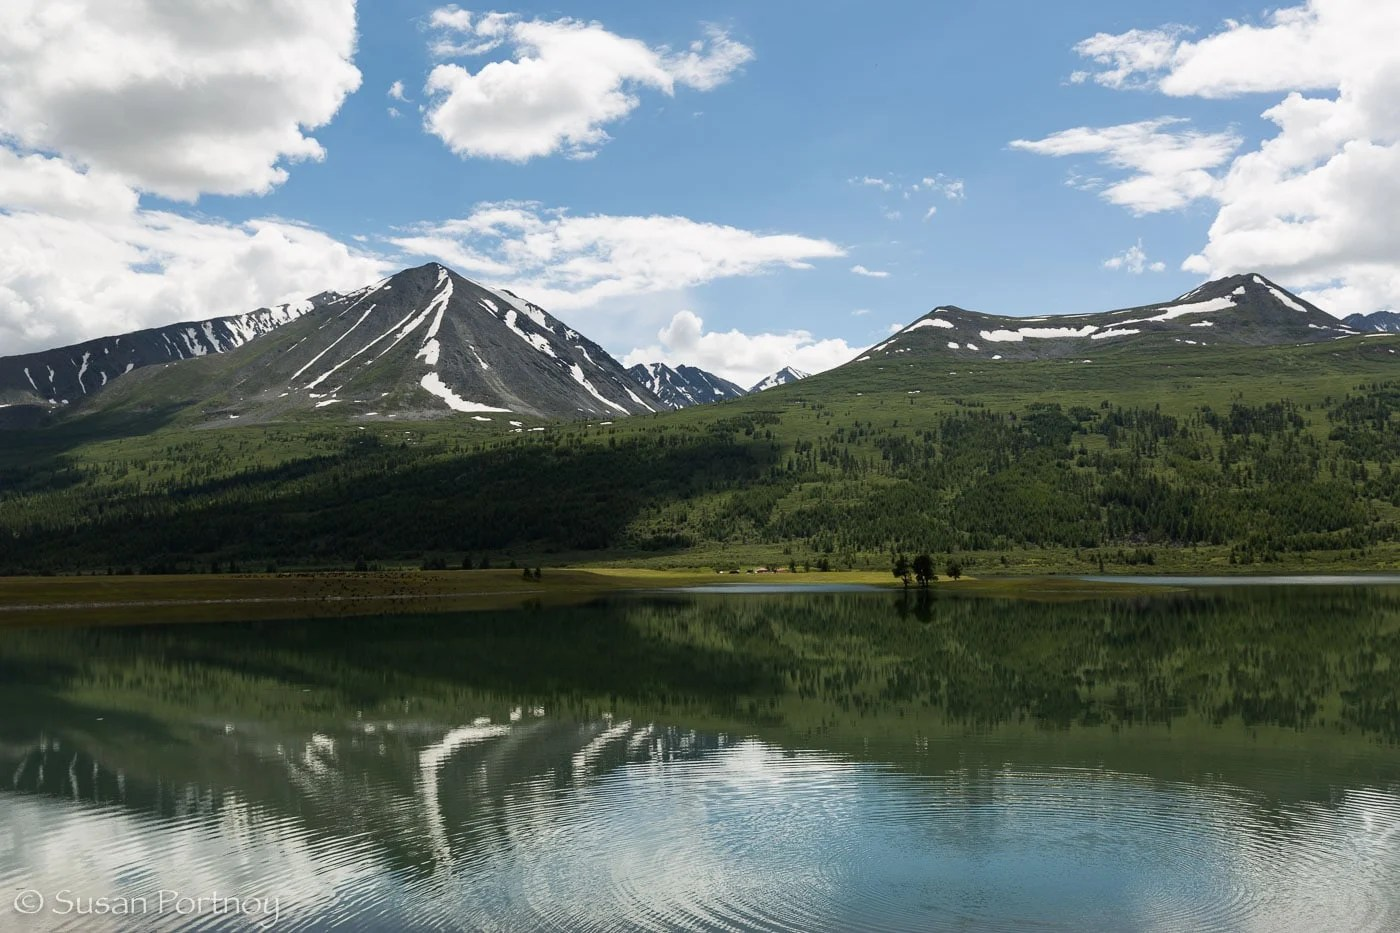 Beautiful mountain landscape and lake in Altai Tavan Bogd National Park, Mongolia